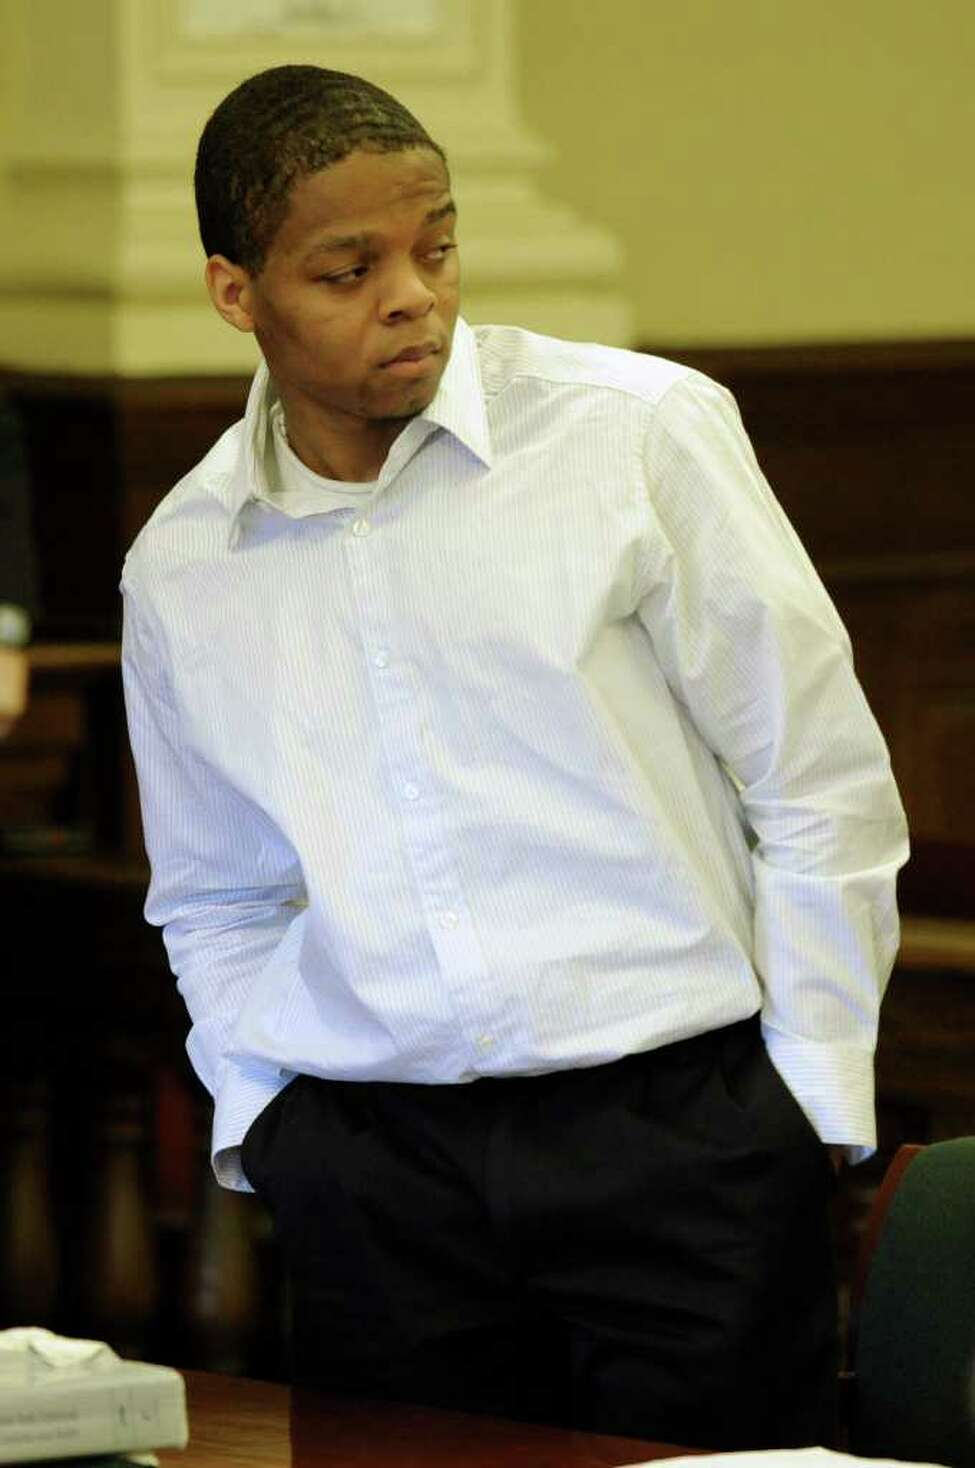 Ayerius Benson in the courtroom of Judge Andrew Ceresia in Troy, N.Y., on April 11, 2011. He is standing trial for the alleged murder of Turhan Tate April 15, 2010. (Skip Dickstein / Times Union)